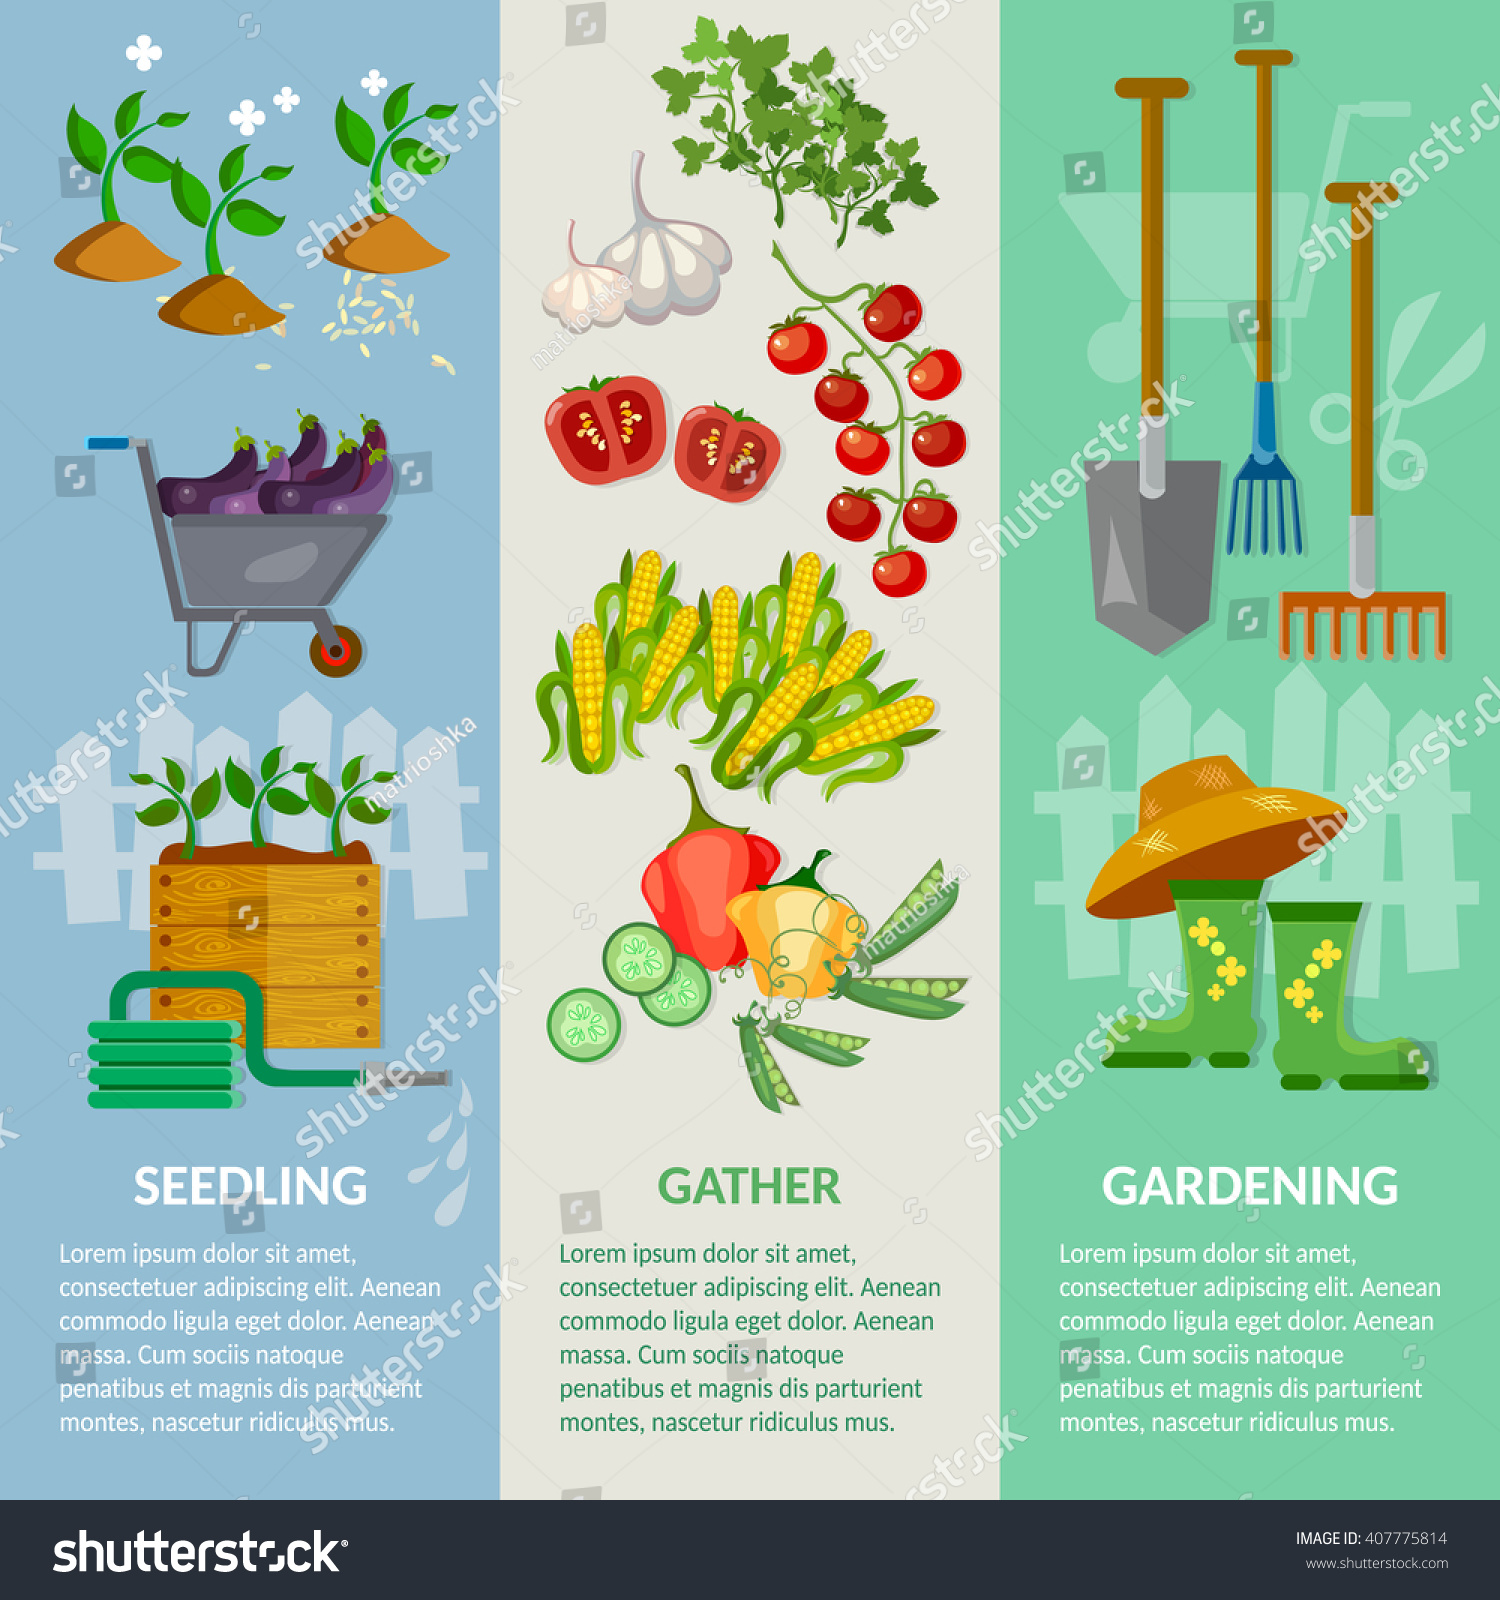 Vegetable garden graphic - Garden Banner Garden Tools Working In The Garden Vegetable Growing Vector Illustration